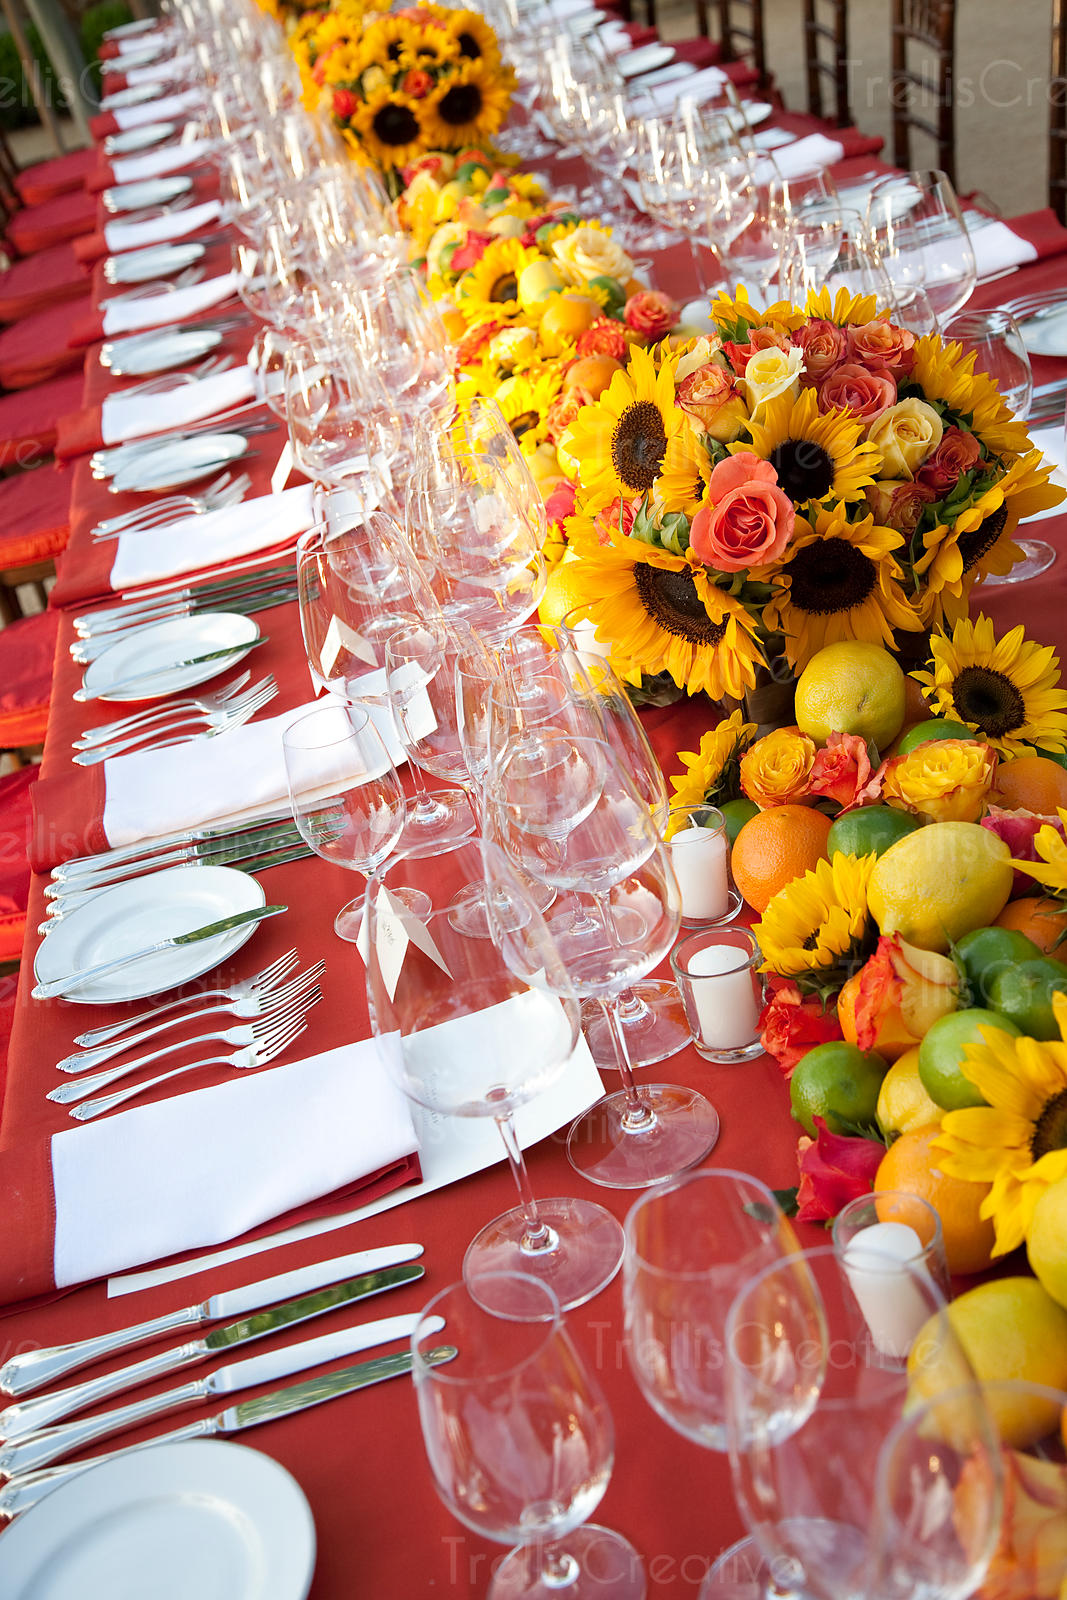 Long table festively decorated with sunflowers and fine china for party